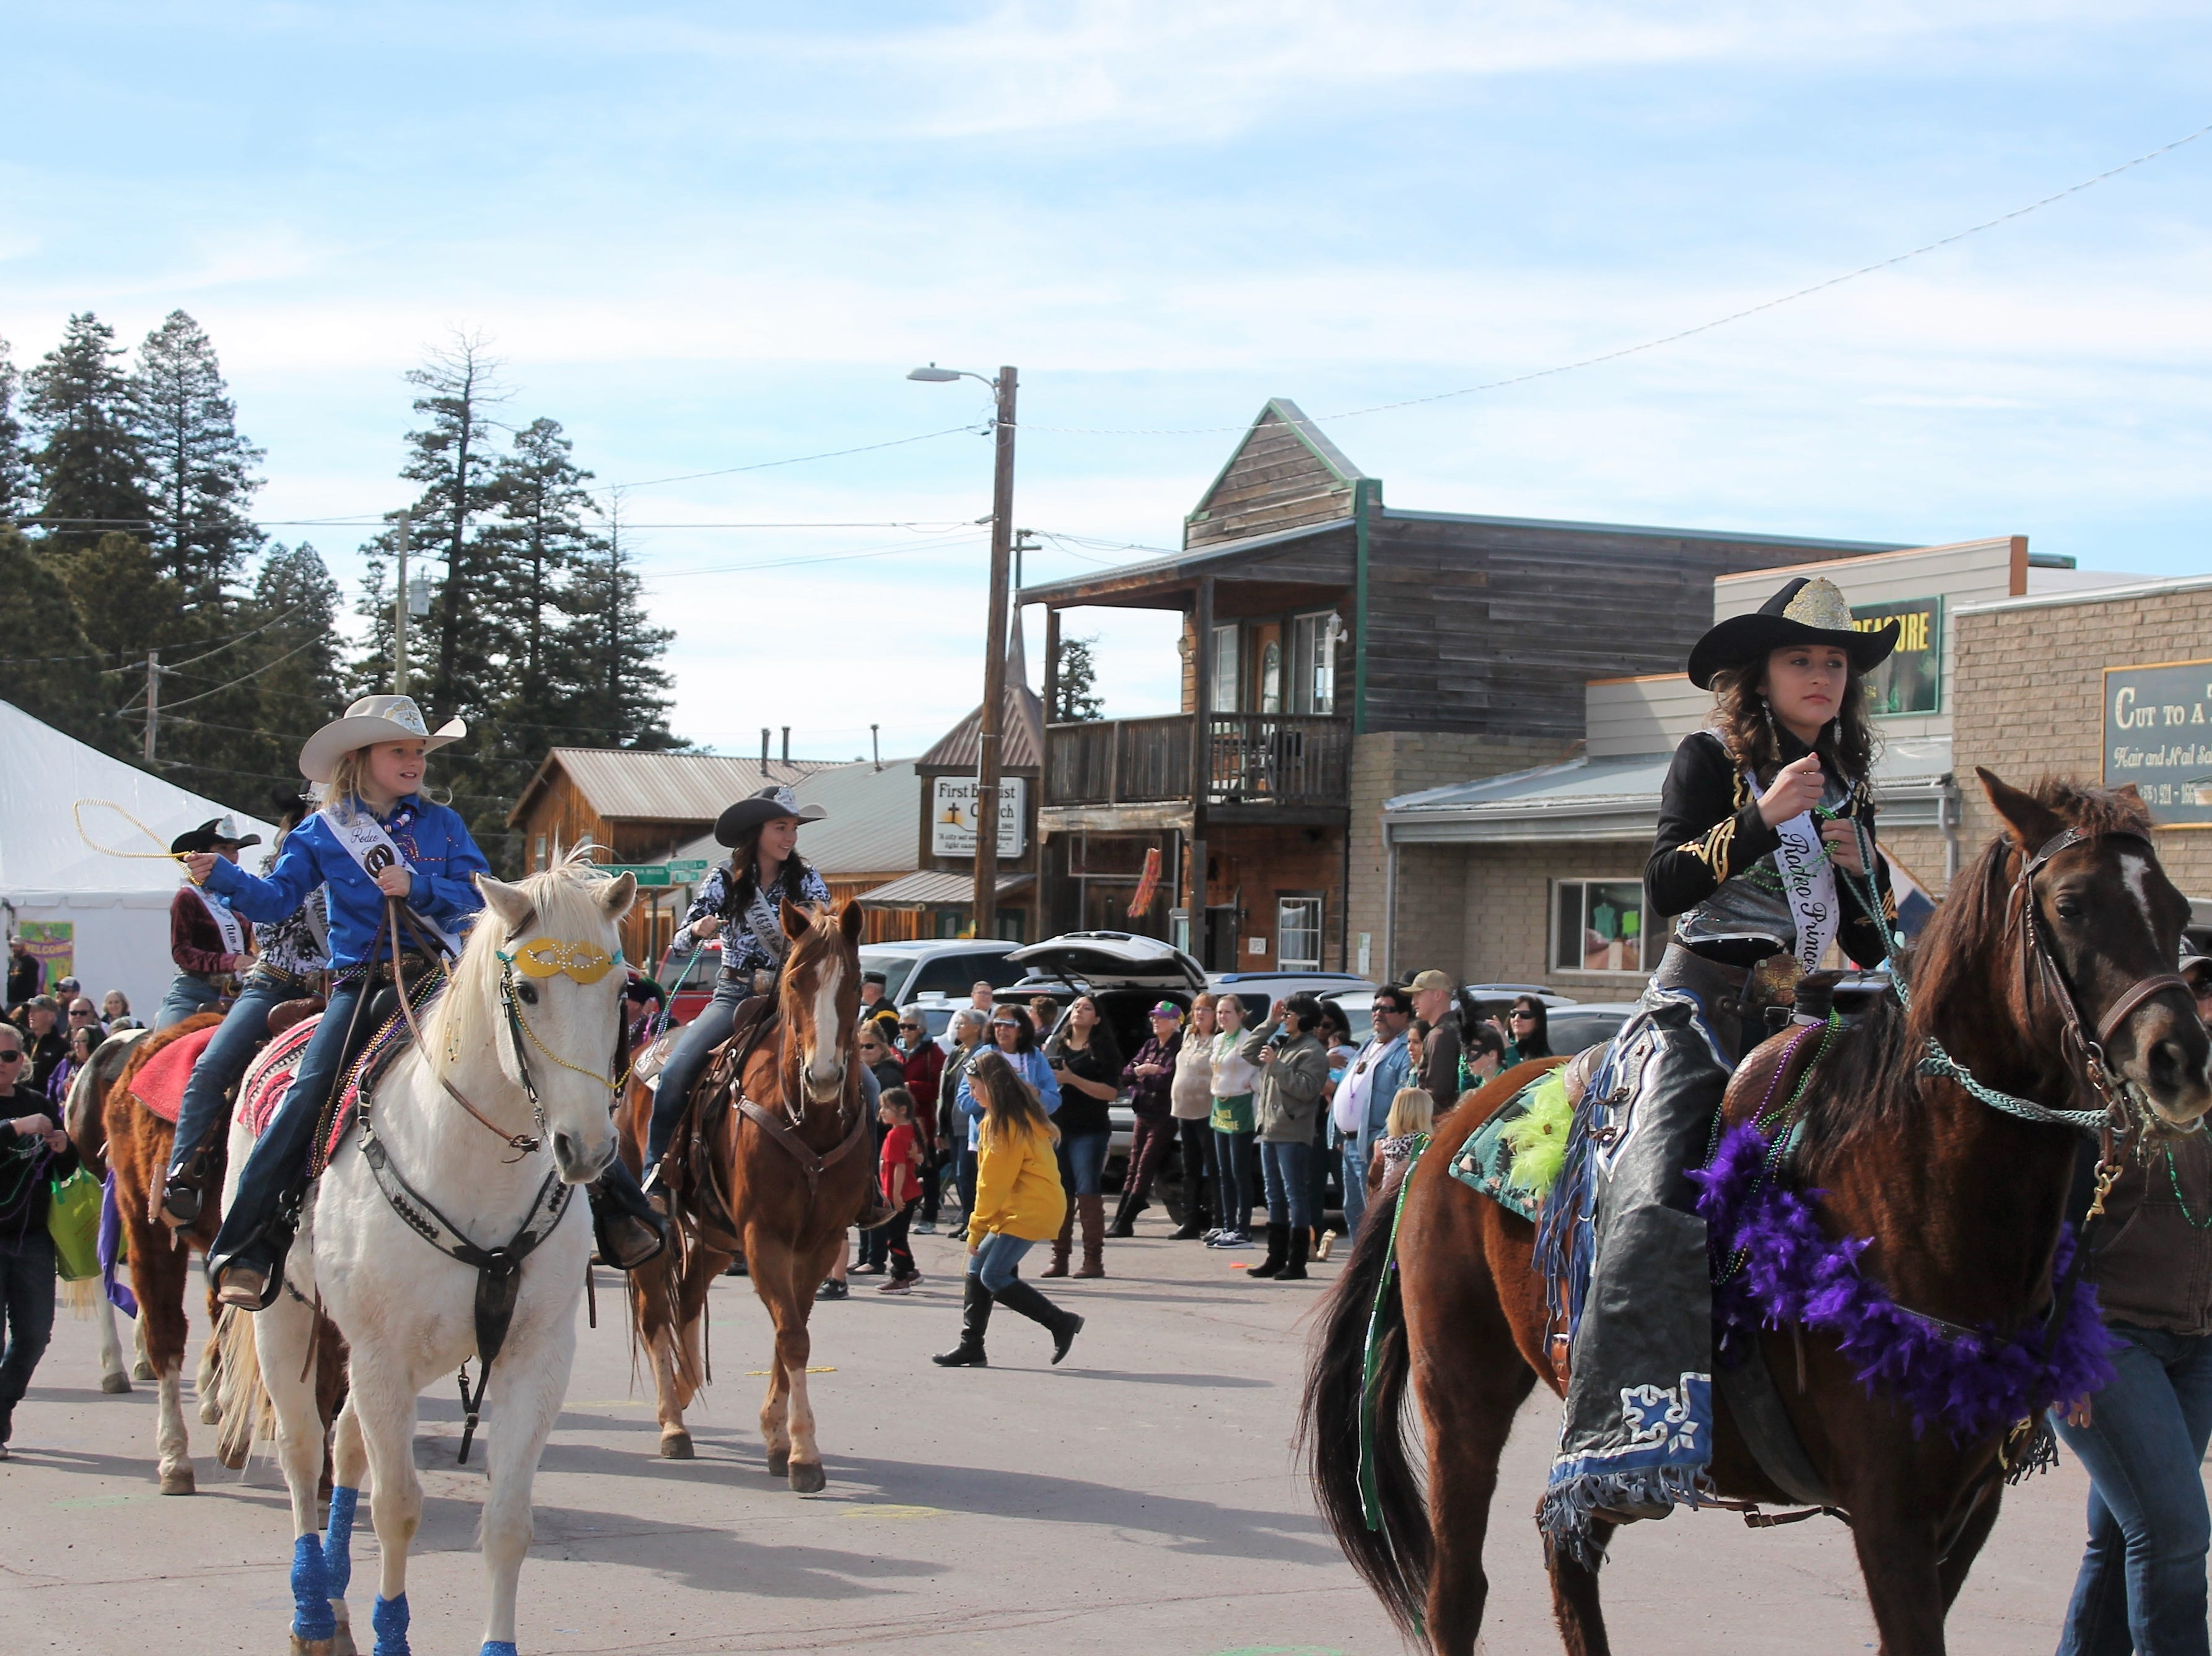 The Rodeo Queens throw beads at the Mardi Gras Parade in Cloudcroft Saturday.